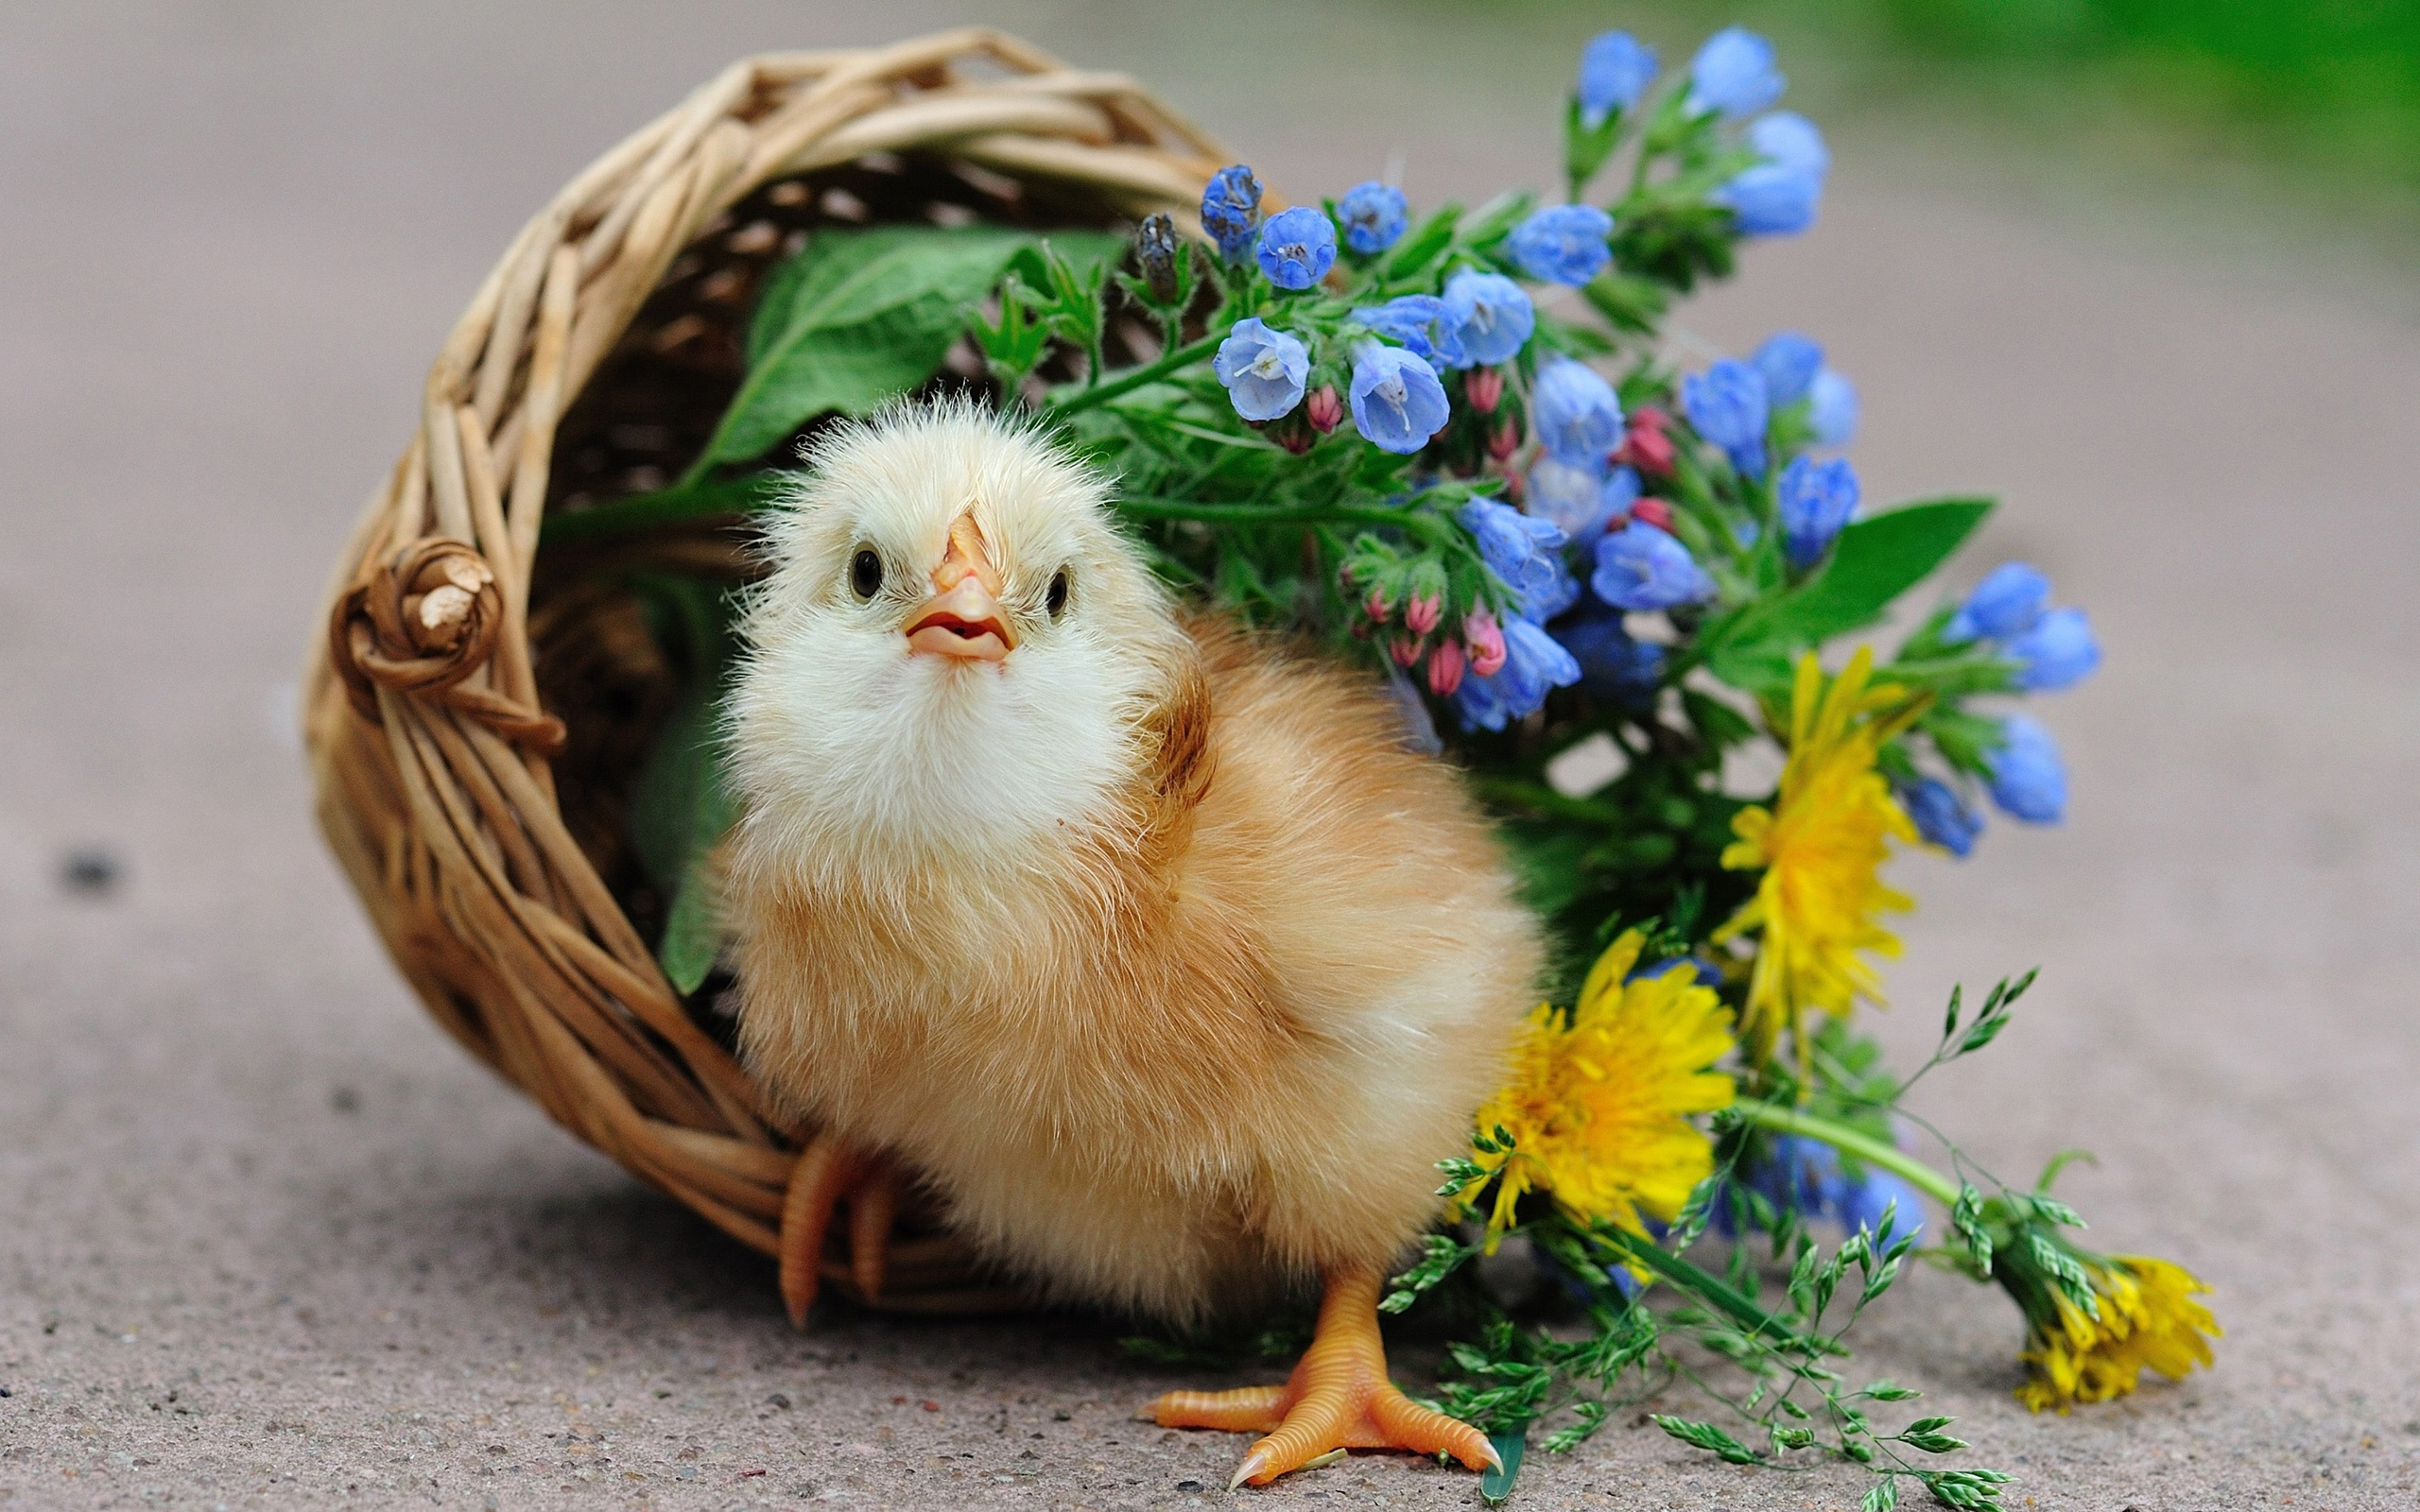 Wallpaper Cute Chick Basket Flowers 2560x1600 Hd Picture